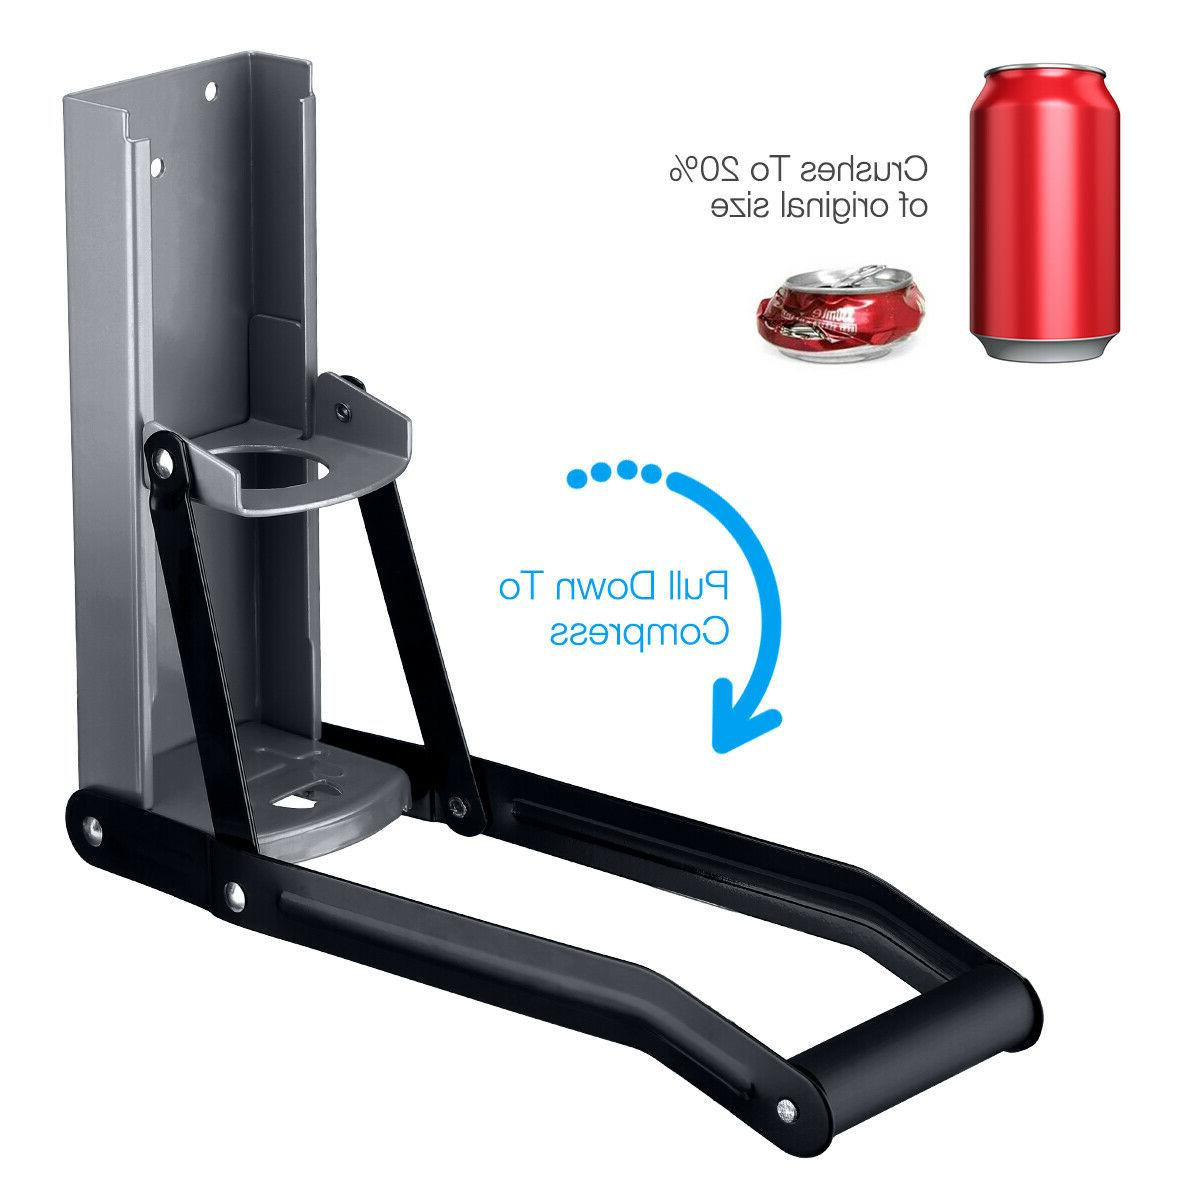 16 oz 12oz oz Aluminum Can Wall Mount Recycling Opener